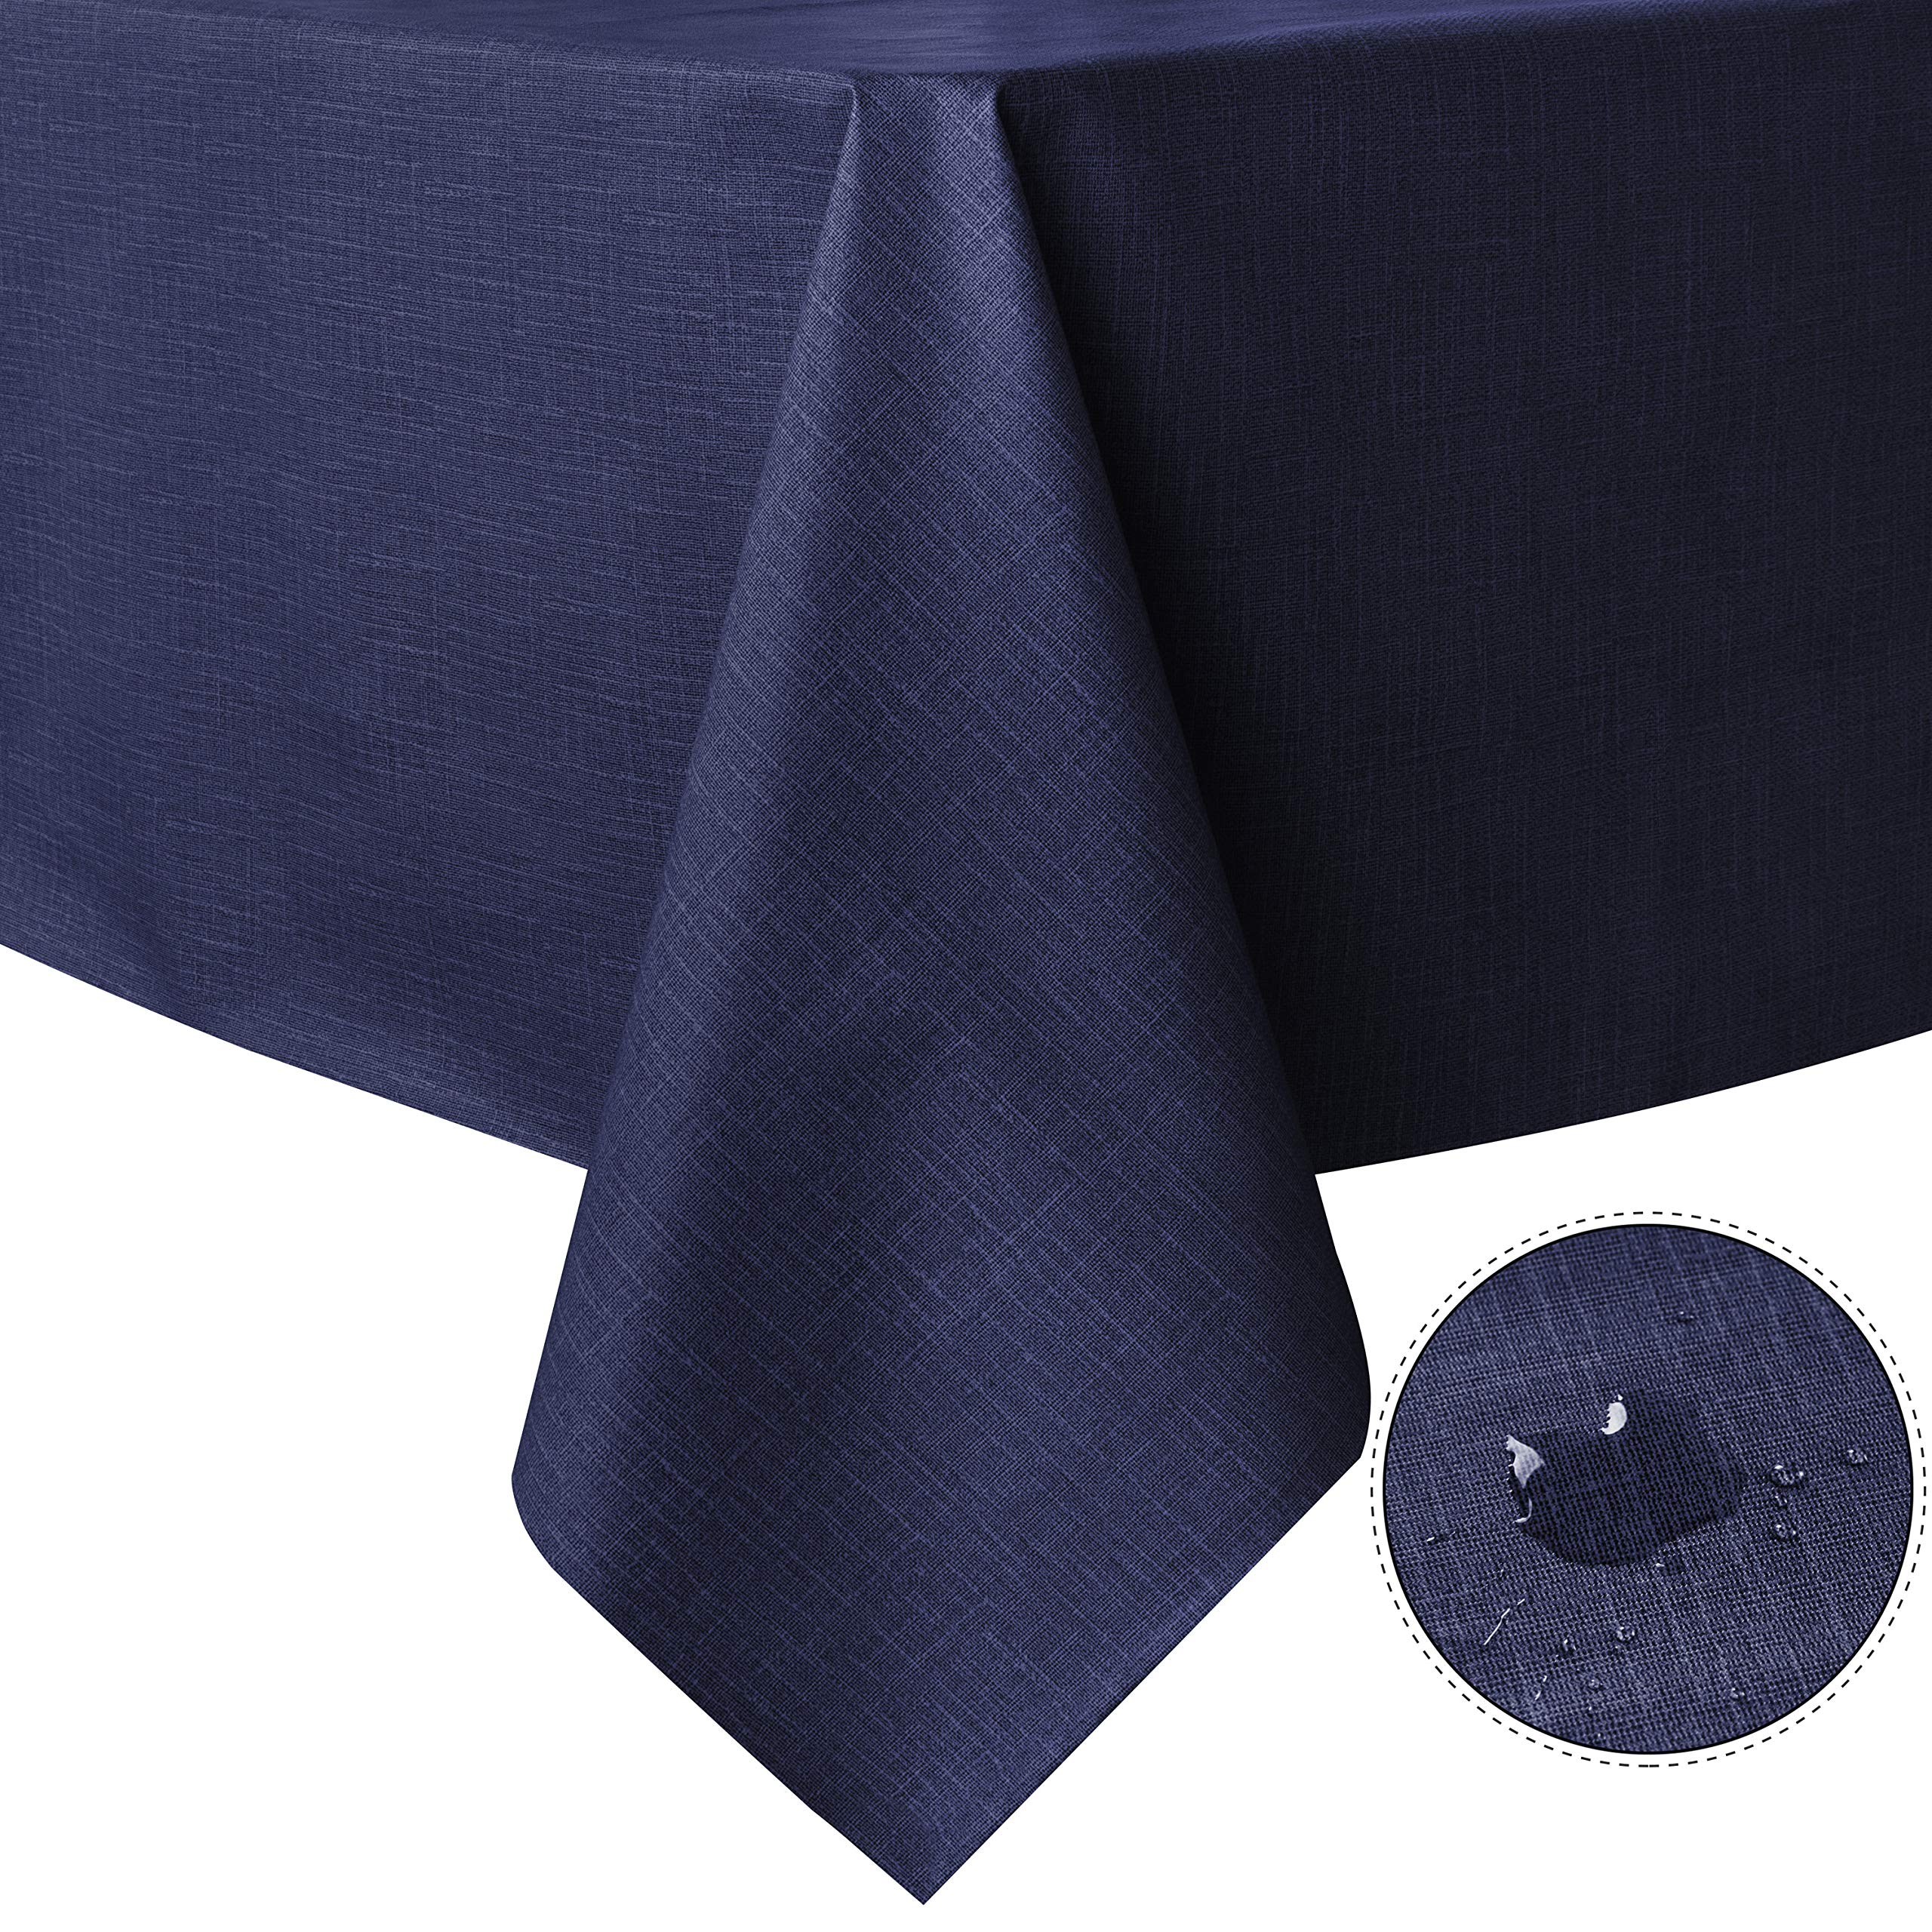 sancua 100% Waterproof Rectangle PVC Tablecloth - 54 x 78 Inch - Oil Proof Spill Proof Vinyl Table Cloth, Wipe Clean Table Cover for Dining Table, Buffet Parties and Camping, Navy